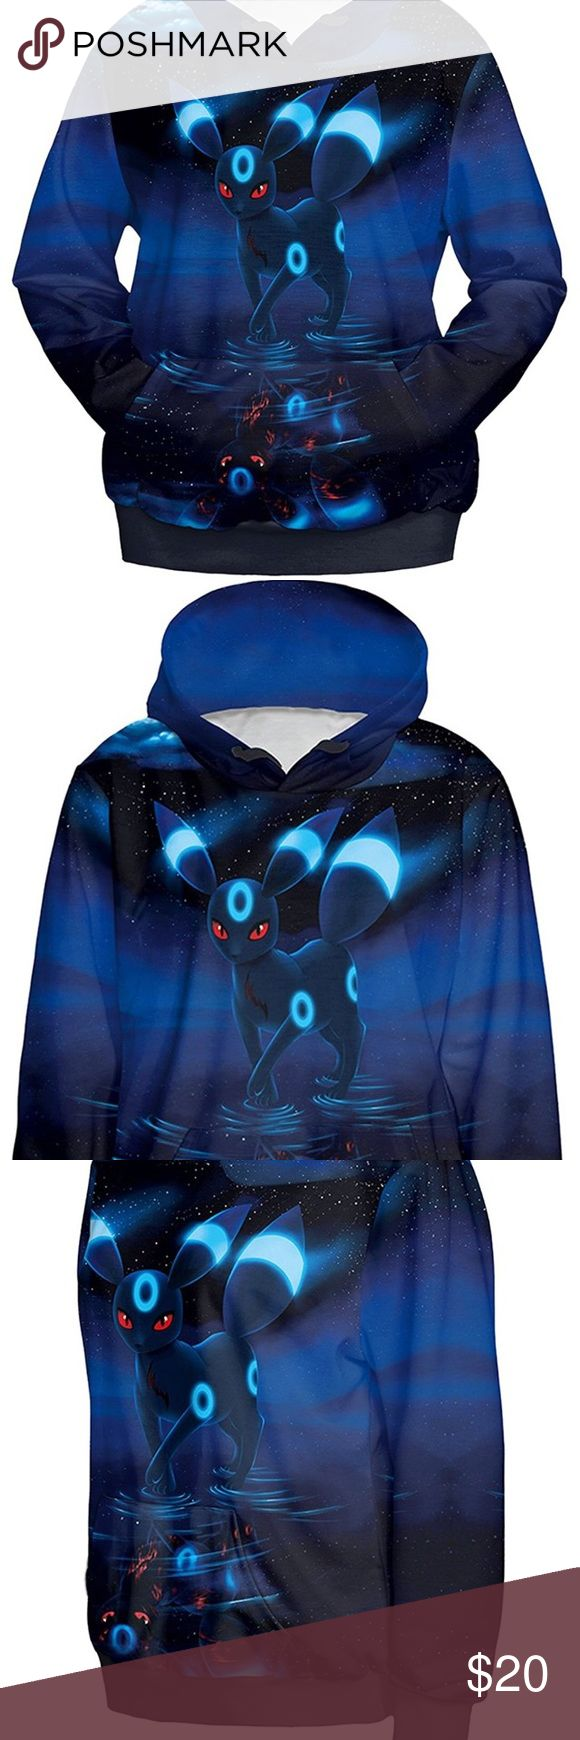 """Cutiefox Women's 3D Umbreon Printed Hoodie, Sz L 🔷 Fabric:  95% Polyester, 5% Spandex  🔷 Novelty 3D Digital Print Pullover Hoodie Sweatshirt  🔷 Soft, Stretchy & Loose Fit 🔷 Bust:  Approximate 41"""" 🔷 Length:  Approximate 26"""" 🔷 Machine Washable or Hand Wash Cutiefox Tops Sweatshirts & Hoodies"""